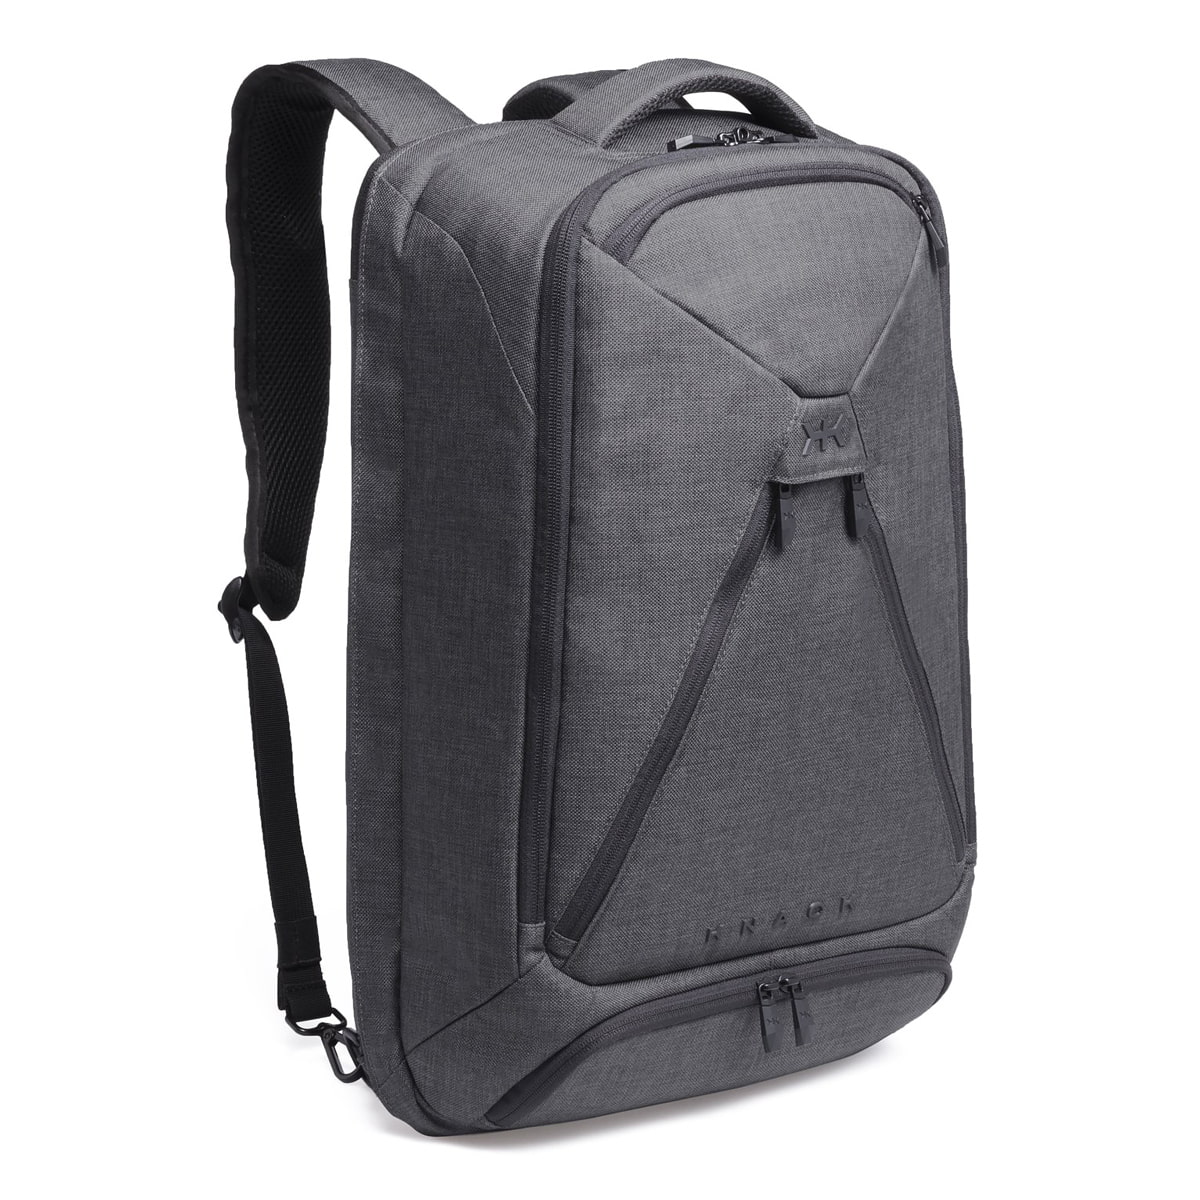 Best Expandable Travel Backpack